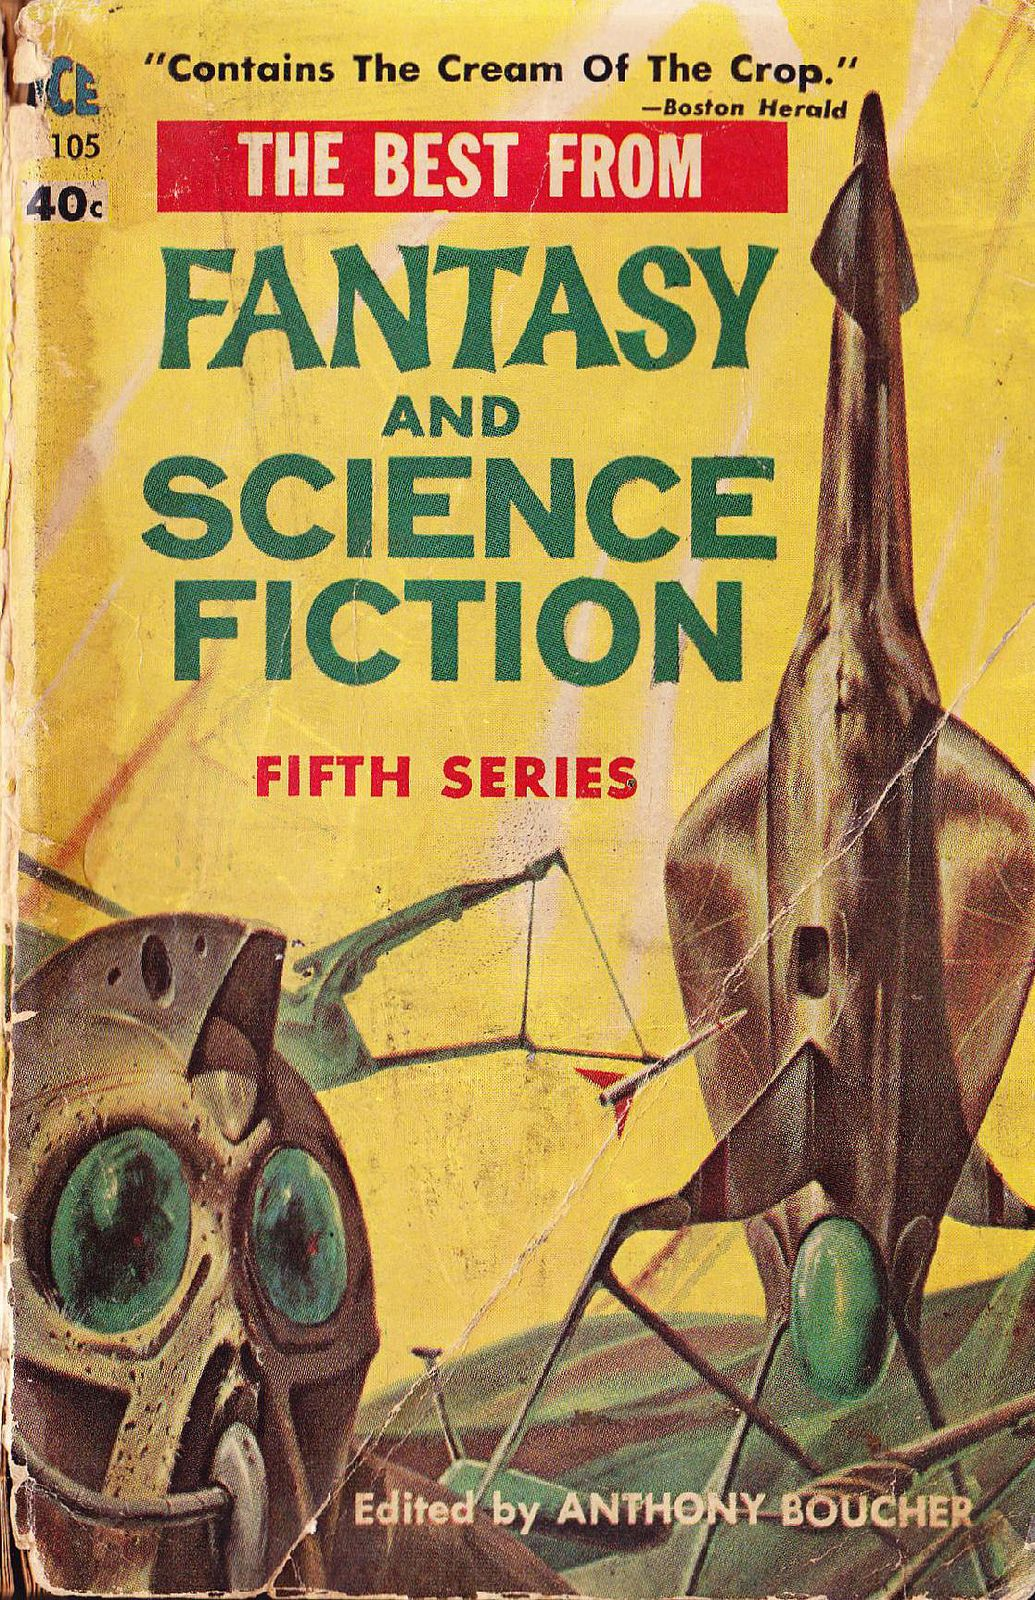 Incredible vintage sf pulp and paperback art in 2020